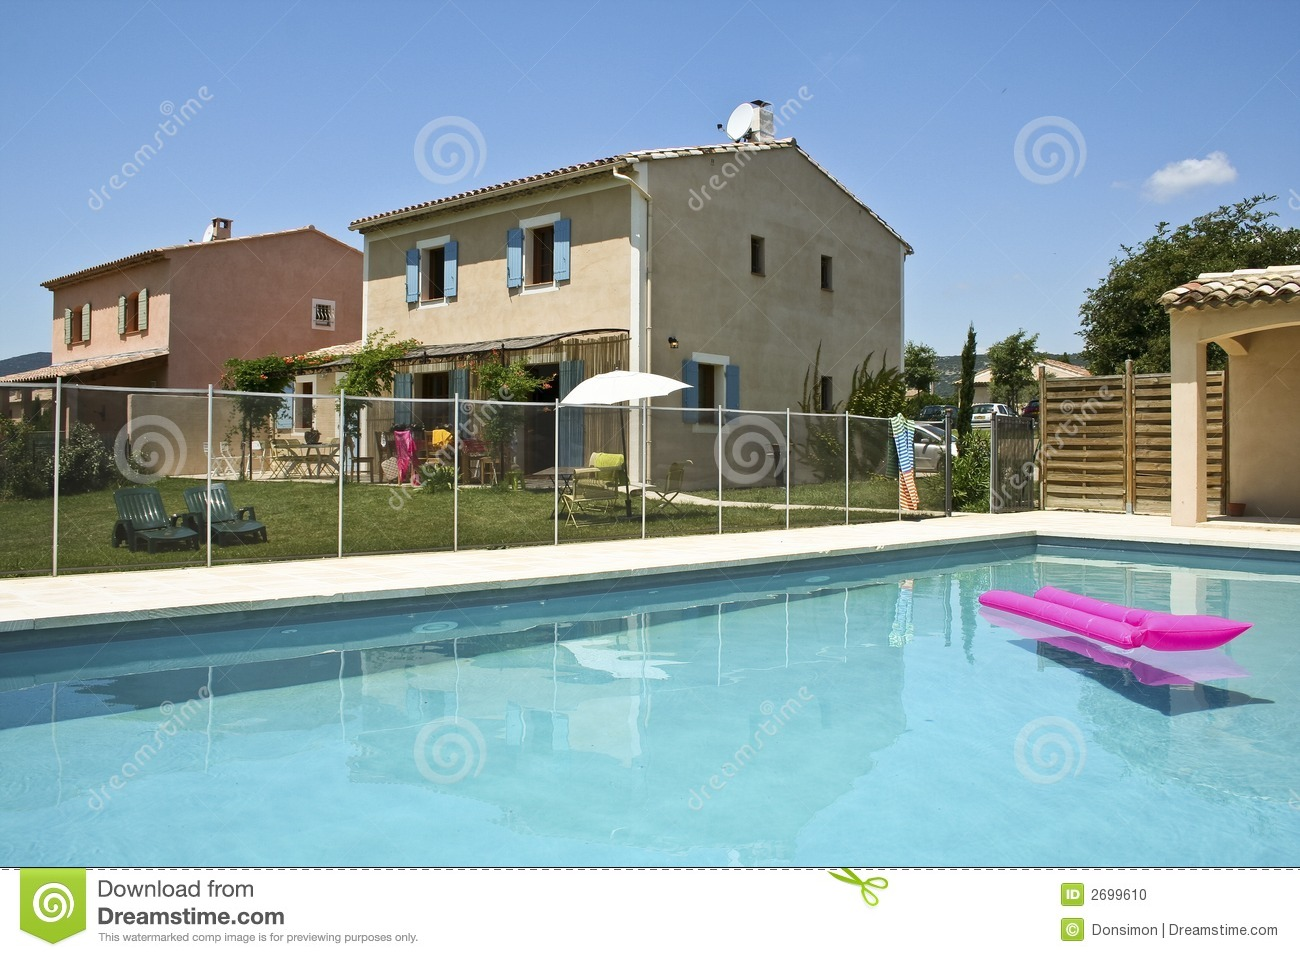 Holiday Homes Swimming Pool South Of France Stock Photo Image Of Living Houses 2699610